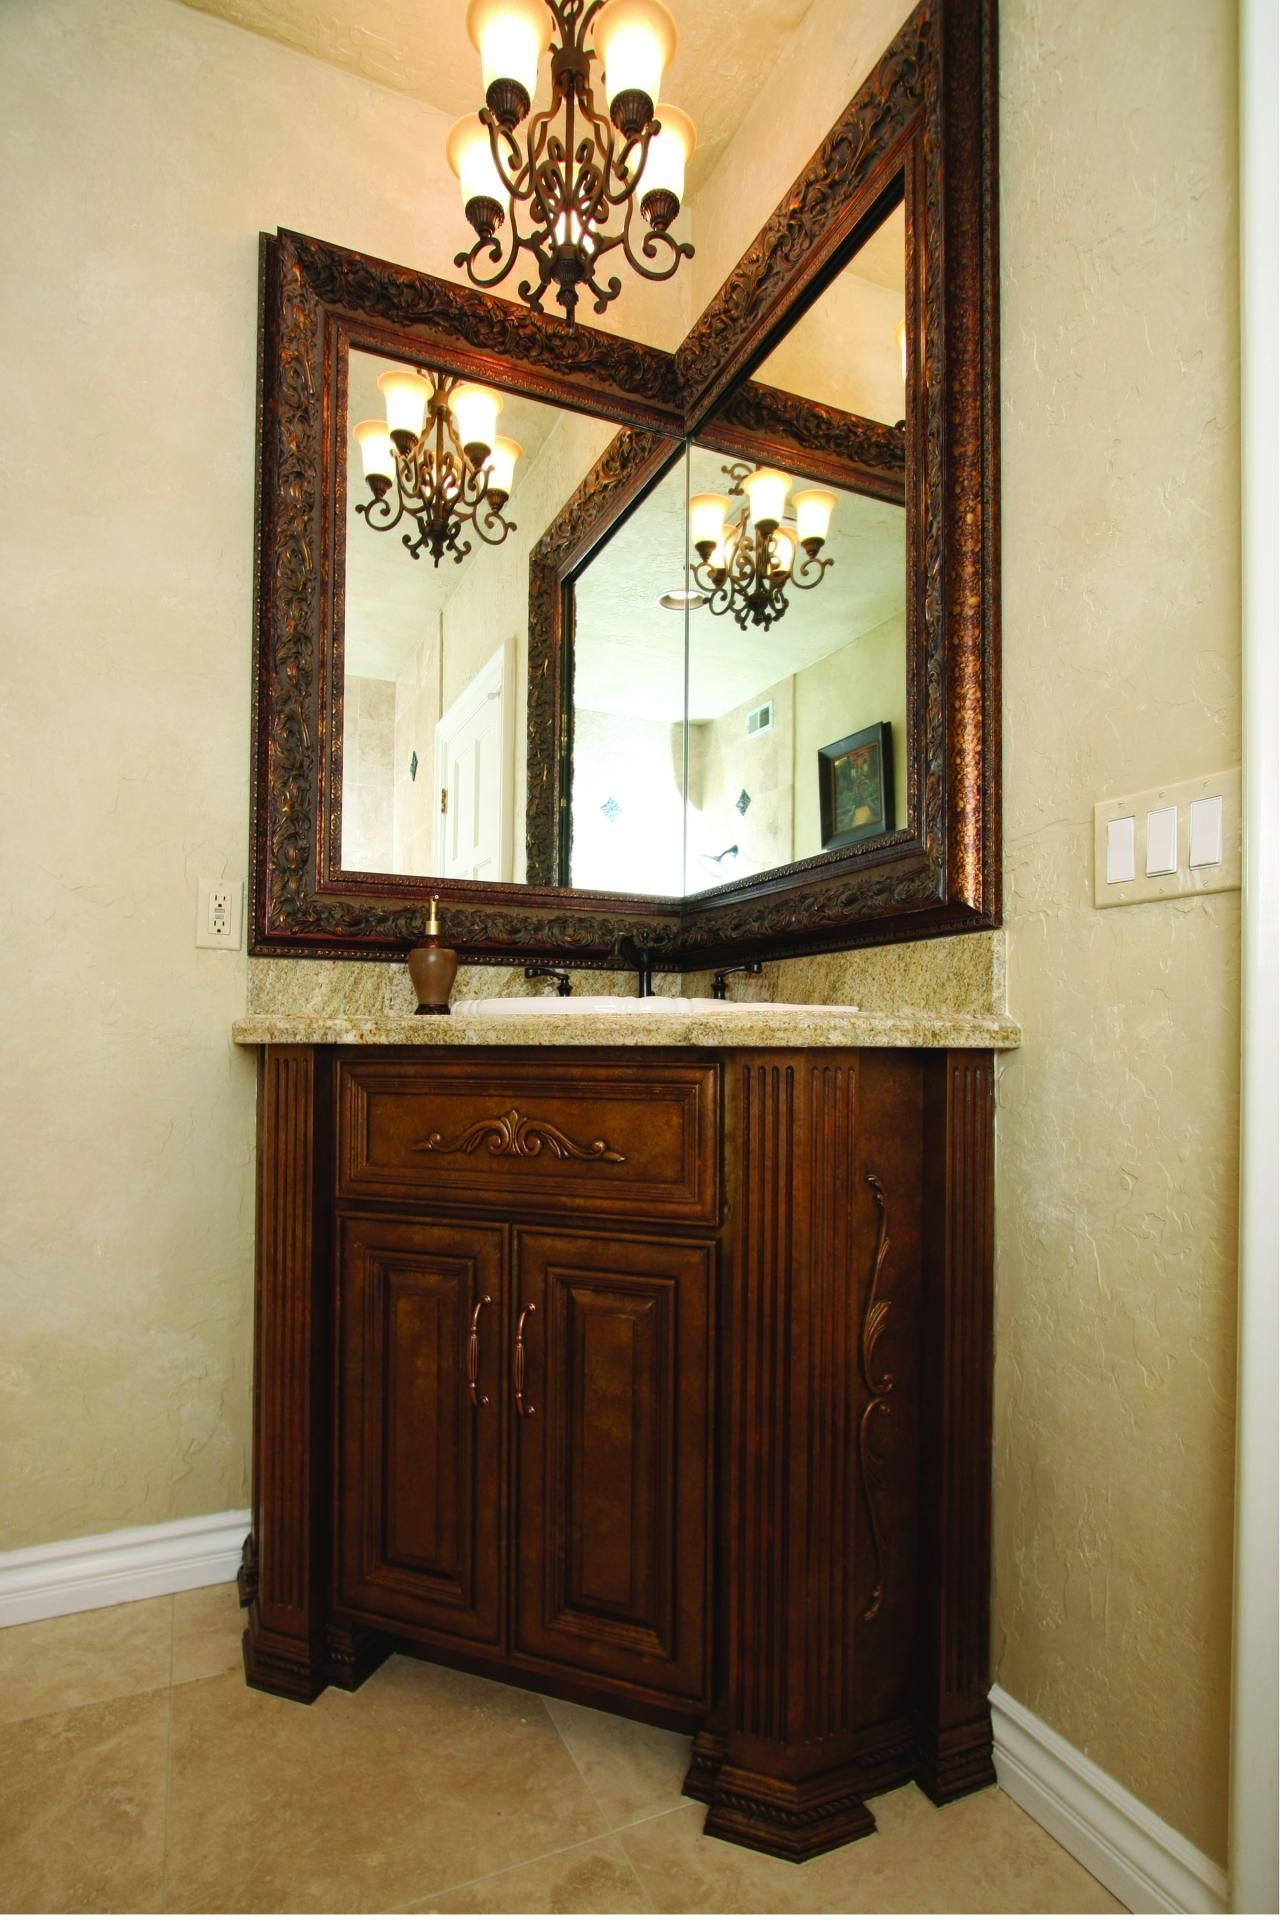 Snazzy Corner Mirror For Bathroom Decoration Ideas Magnificent Victorian Designs With Brown Wooden Finished Single Vanity Carving